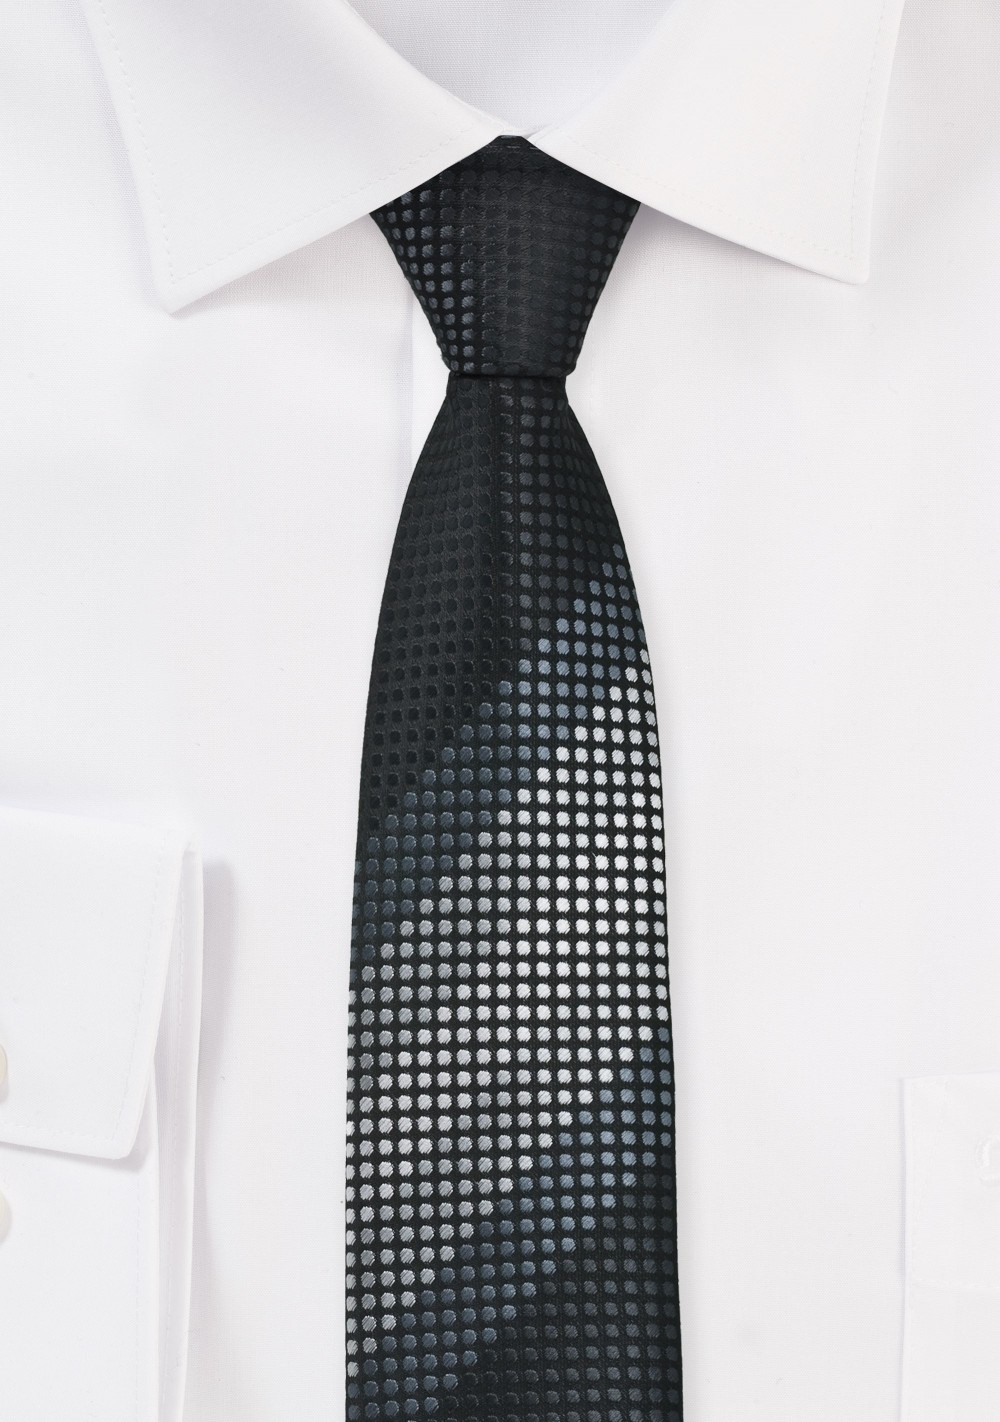 Skinny Tie in Blacks and Silvers